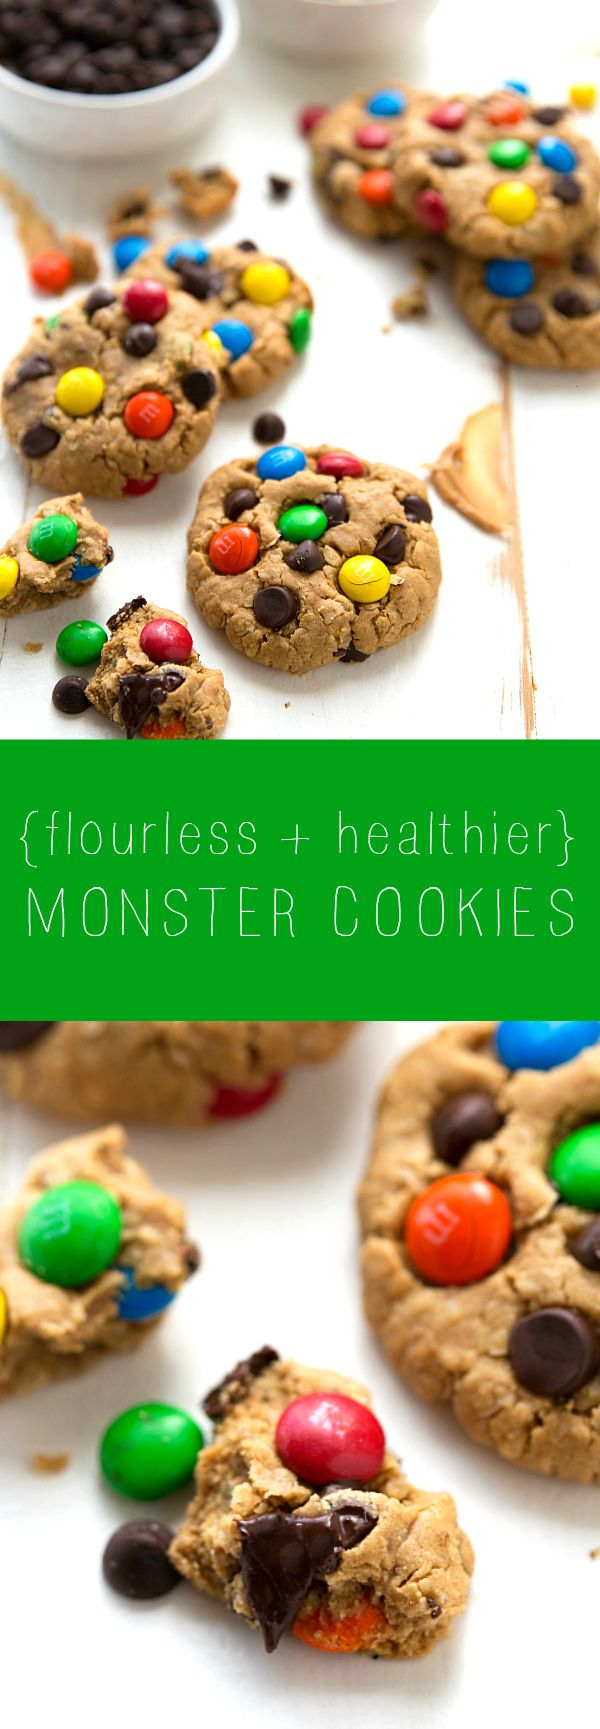 Simple healthier and flourless monster cookies - no flour or butter!